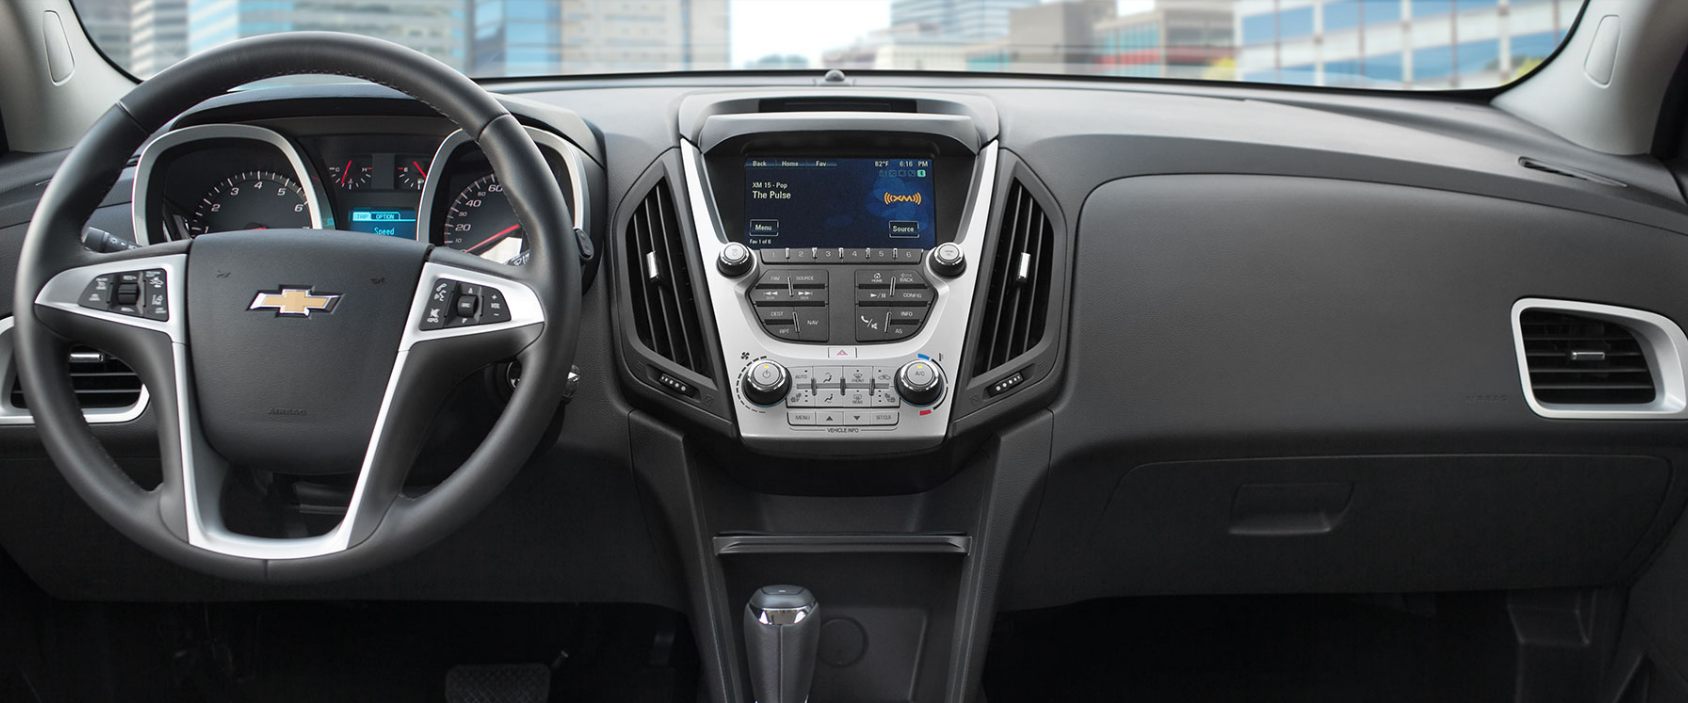 Valley Chevy - Top-Rated SUVs to Buy: Chevrolet Equinox - Entertainment Console